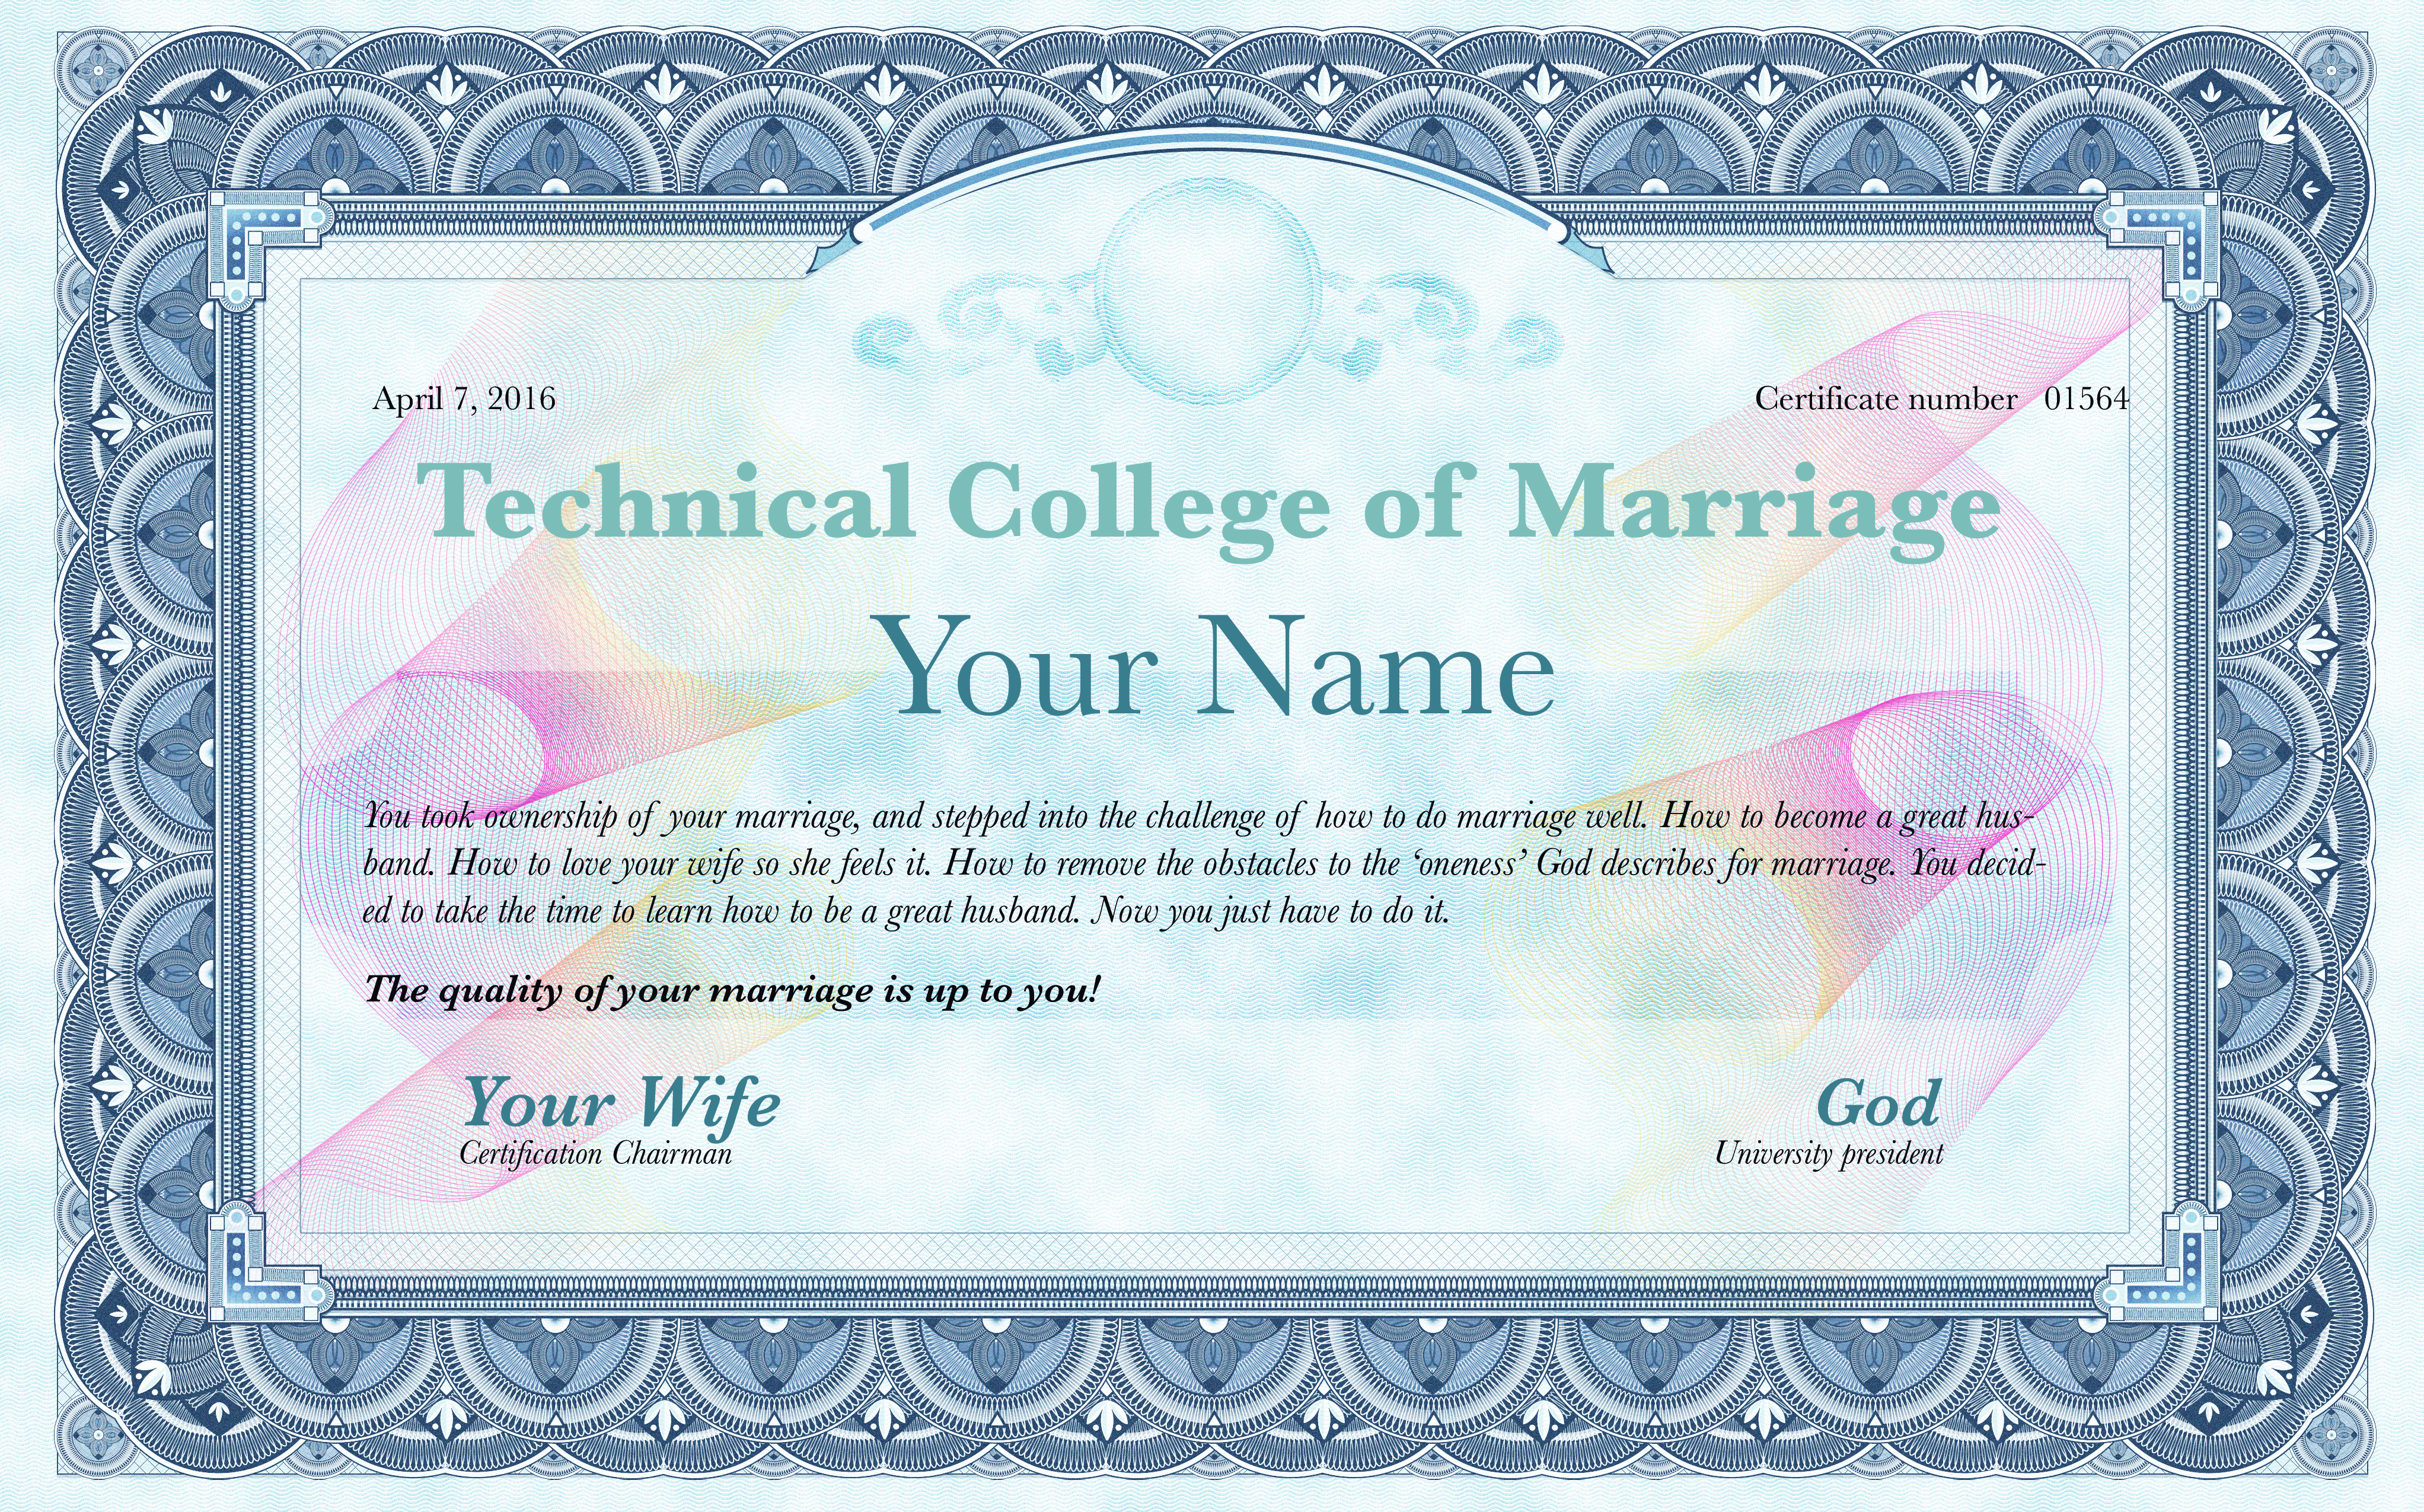 marriage-technical-college